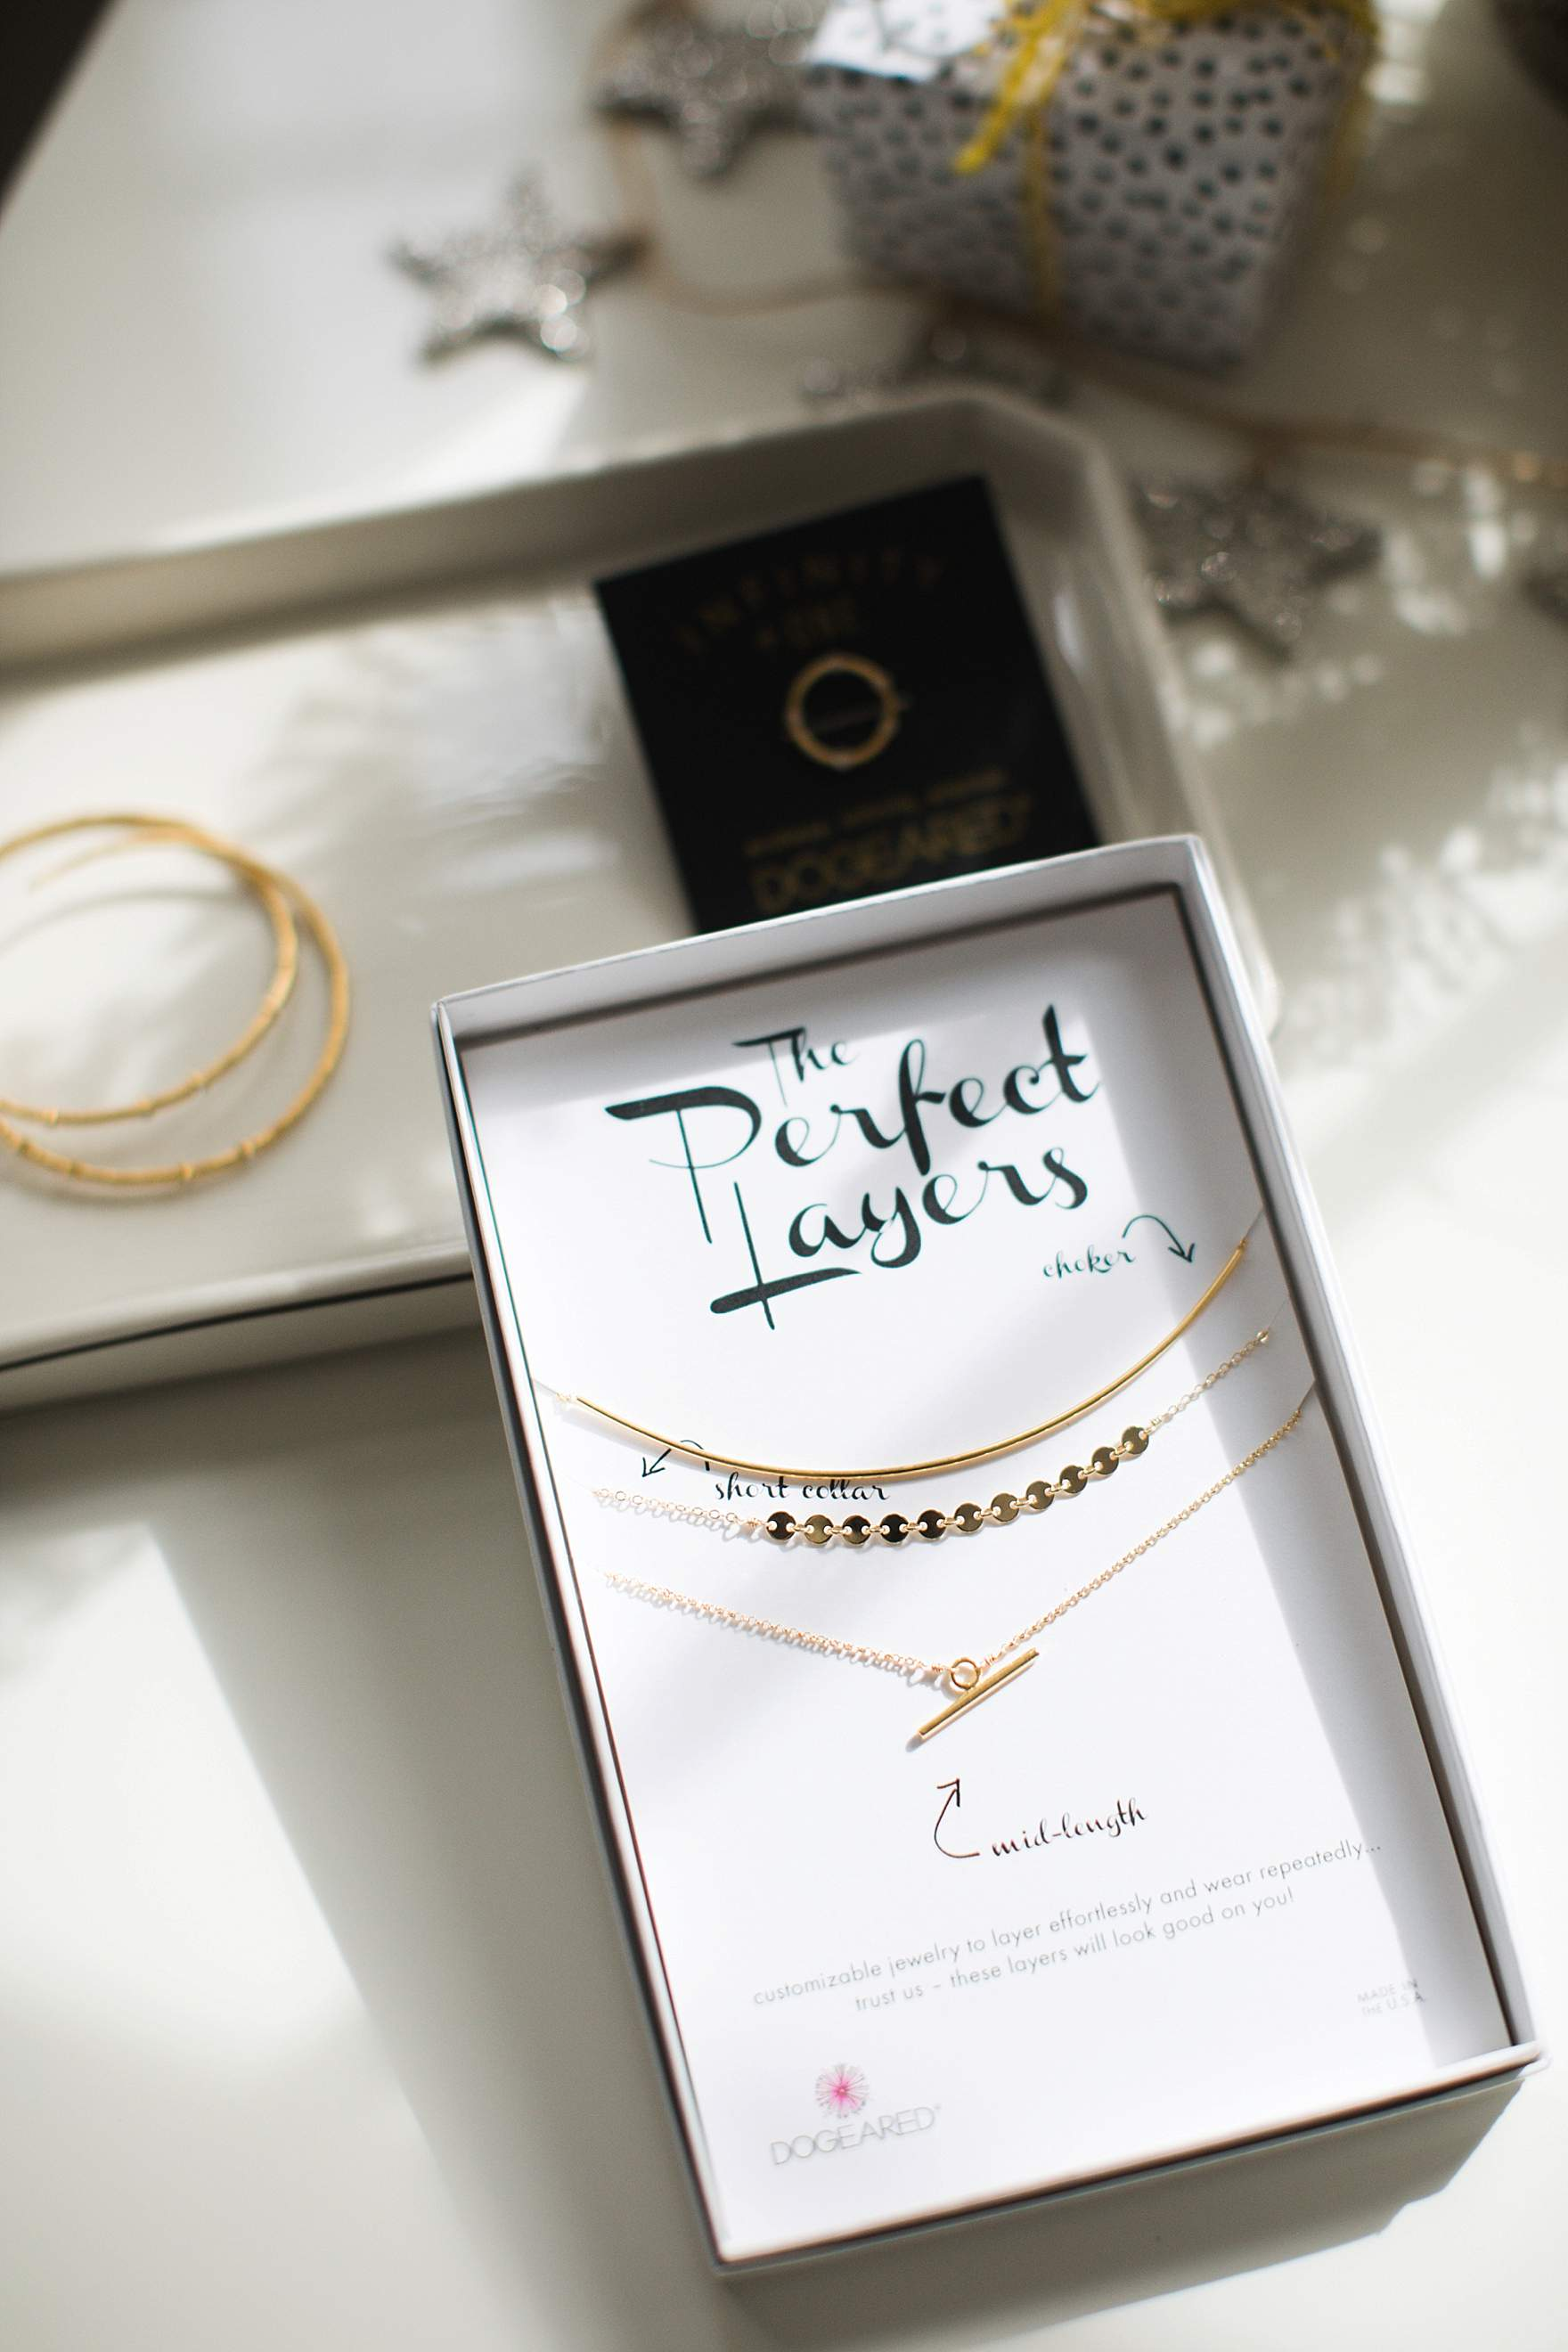 dainty necklaces gold, rose gold or silver plated by Dogeared good for holiday gifting for occasions and comes on a card that has an inspirational message